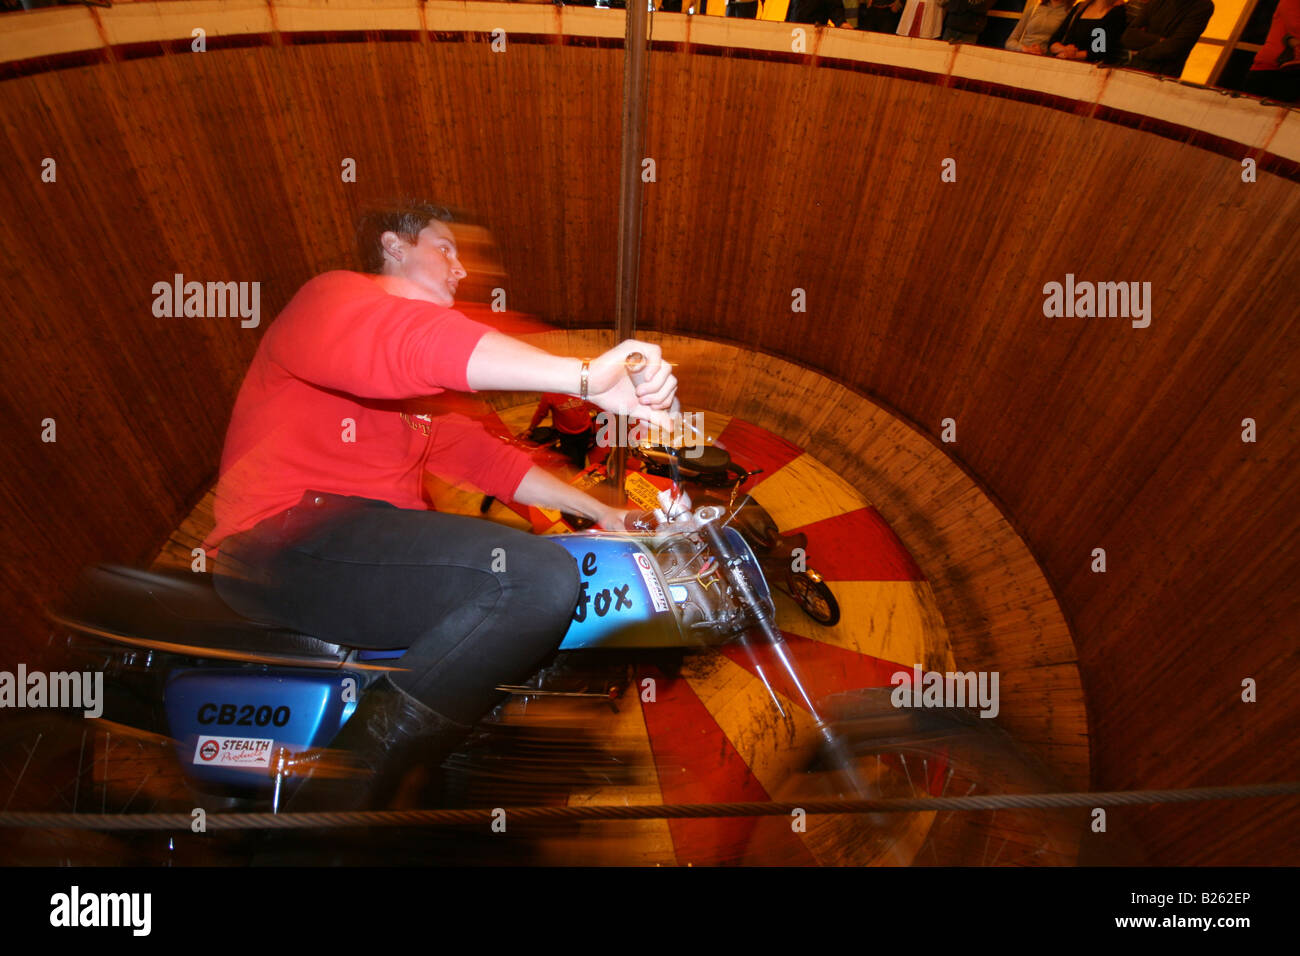 Wall of Death Editorial Use Only - Stock Image